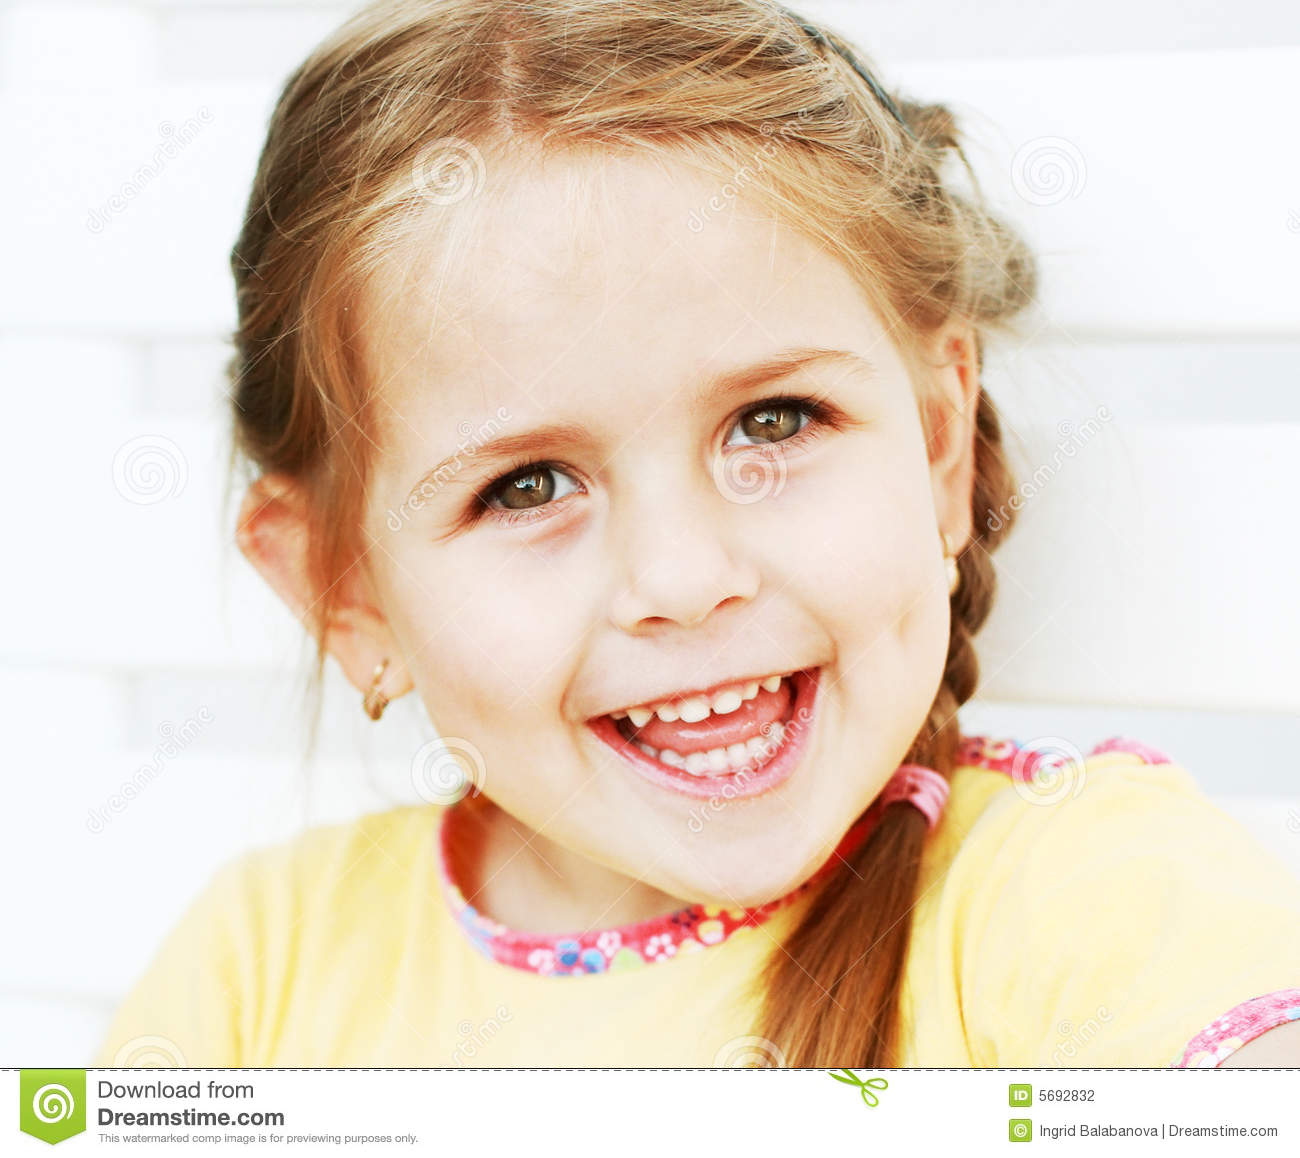 Cute kid laughing stock photo. Image of child, children ...